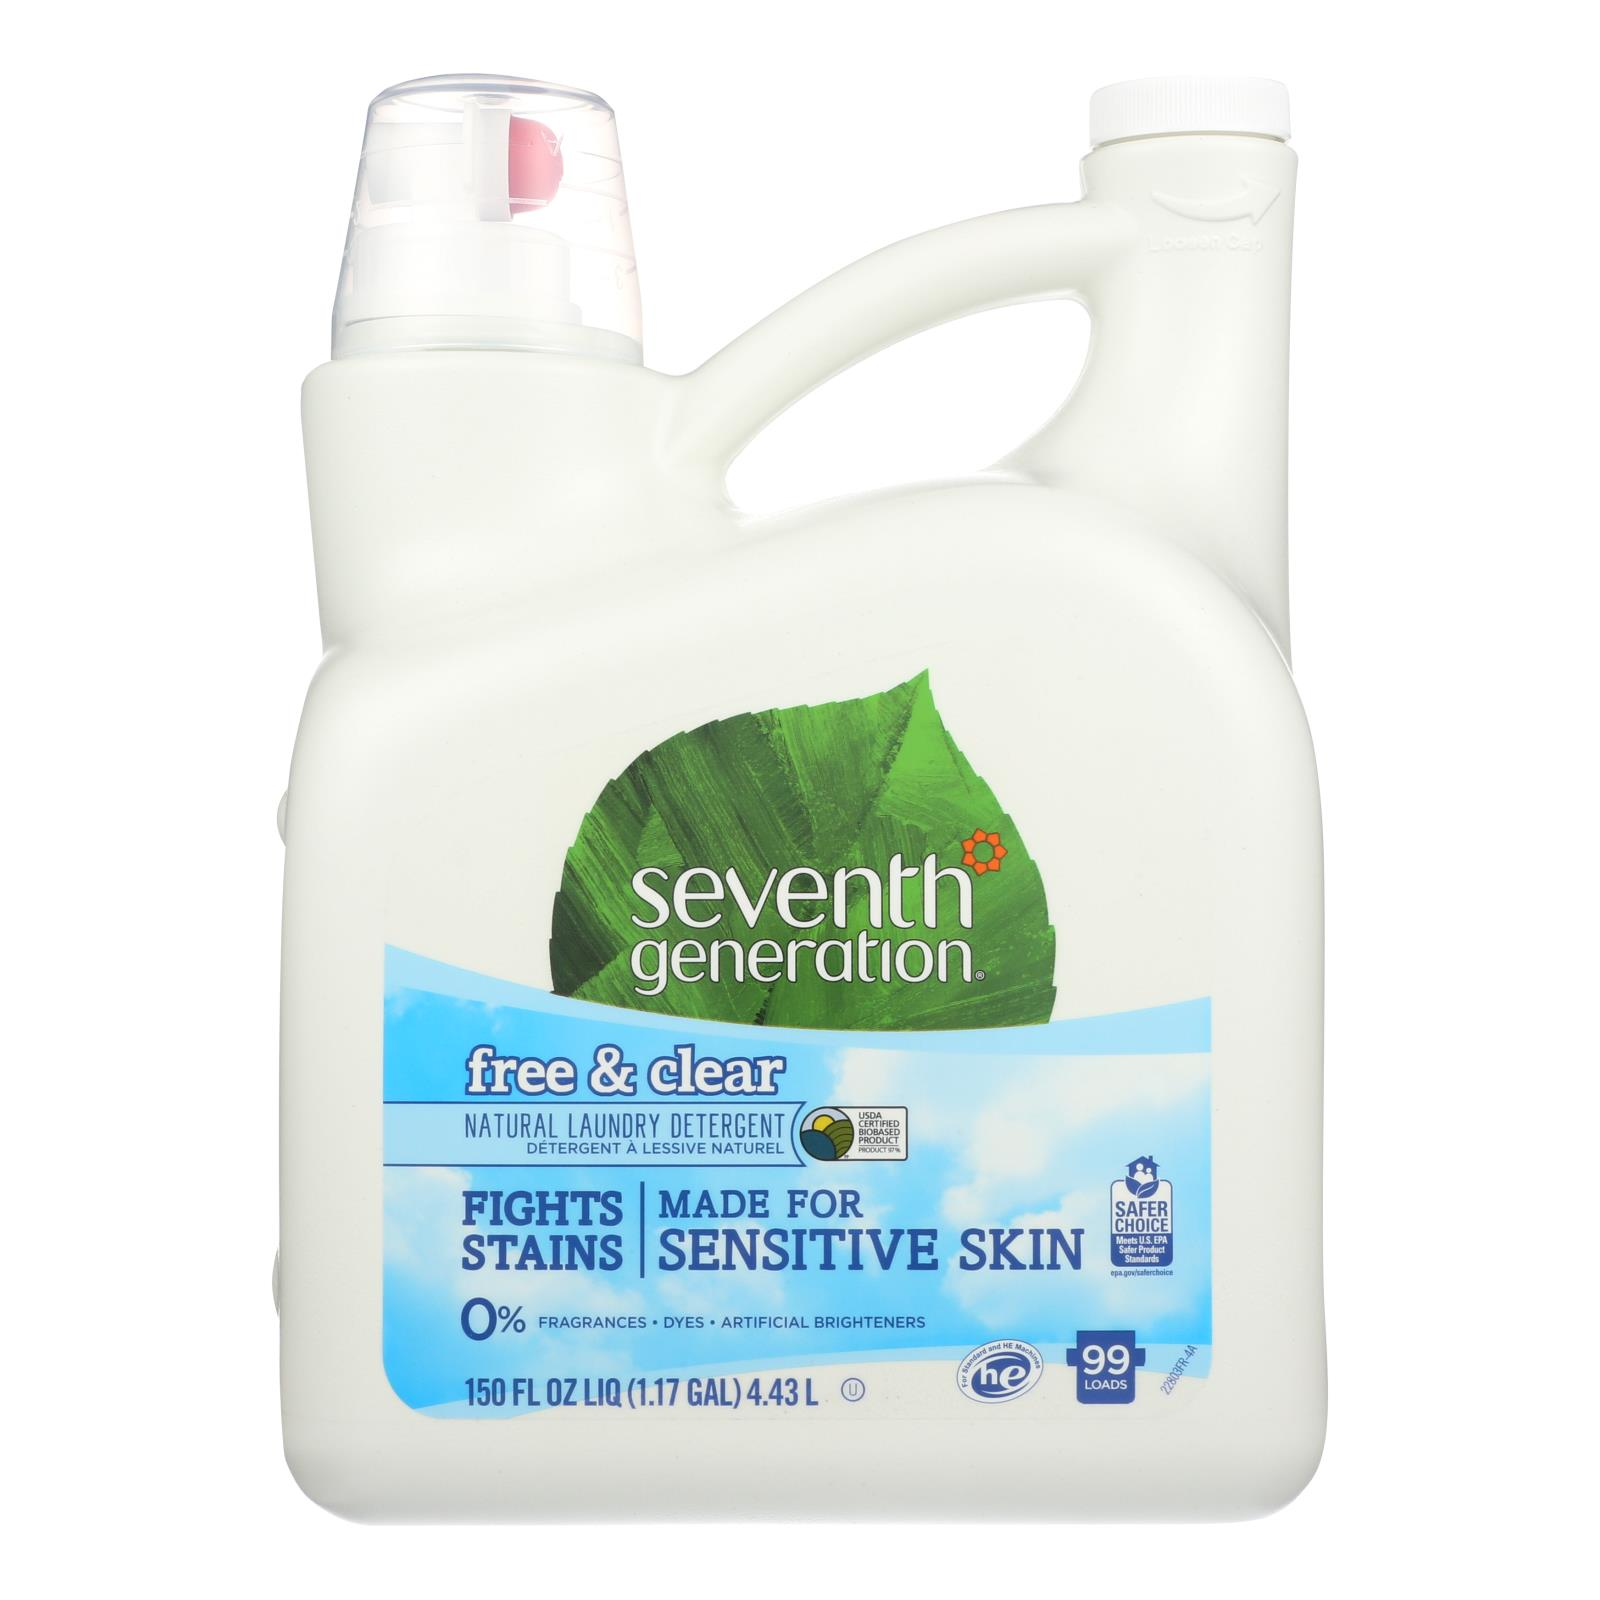 Seventh Generation Natural Laundry Detergent - Free and Clear - Case of 4 - 150 Fl oz.